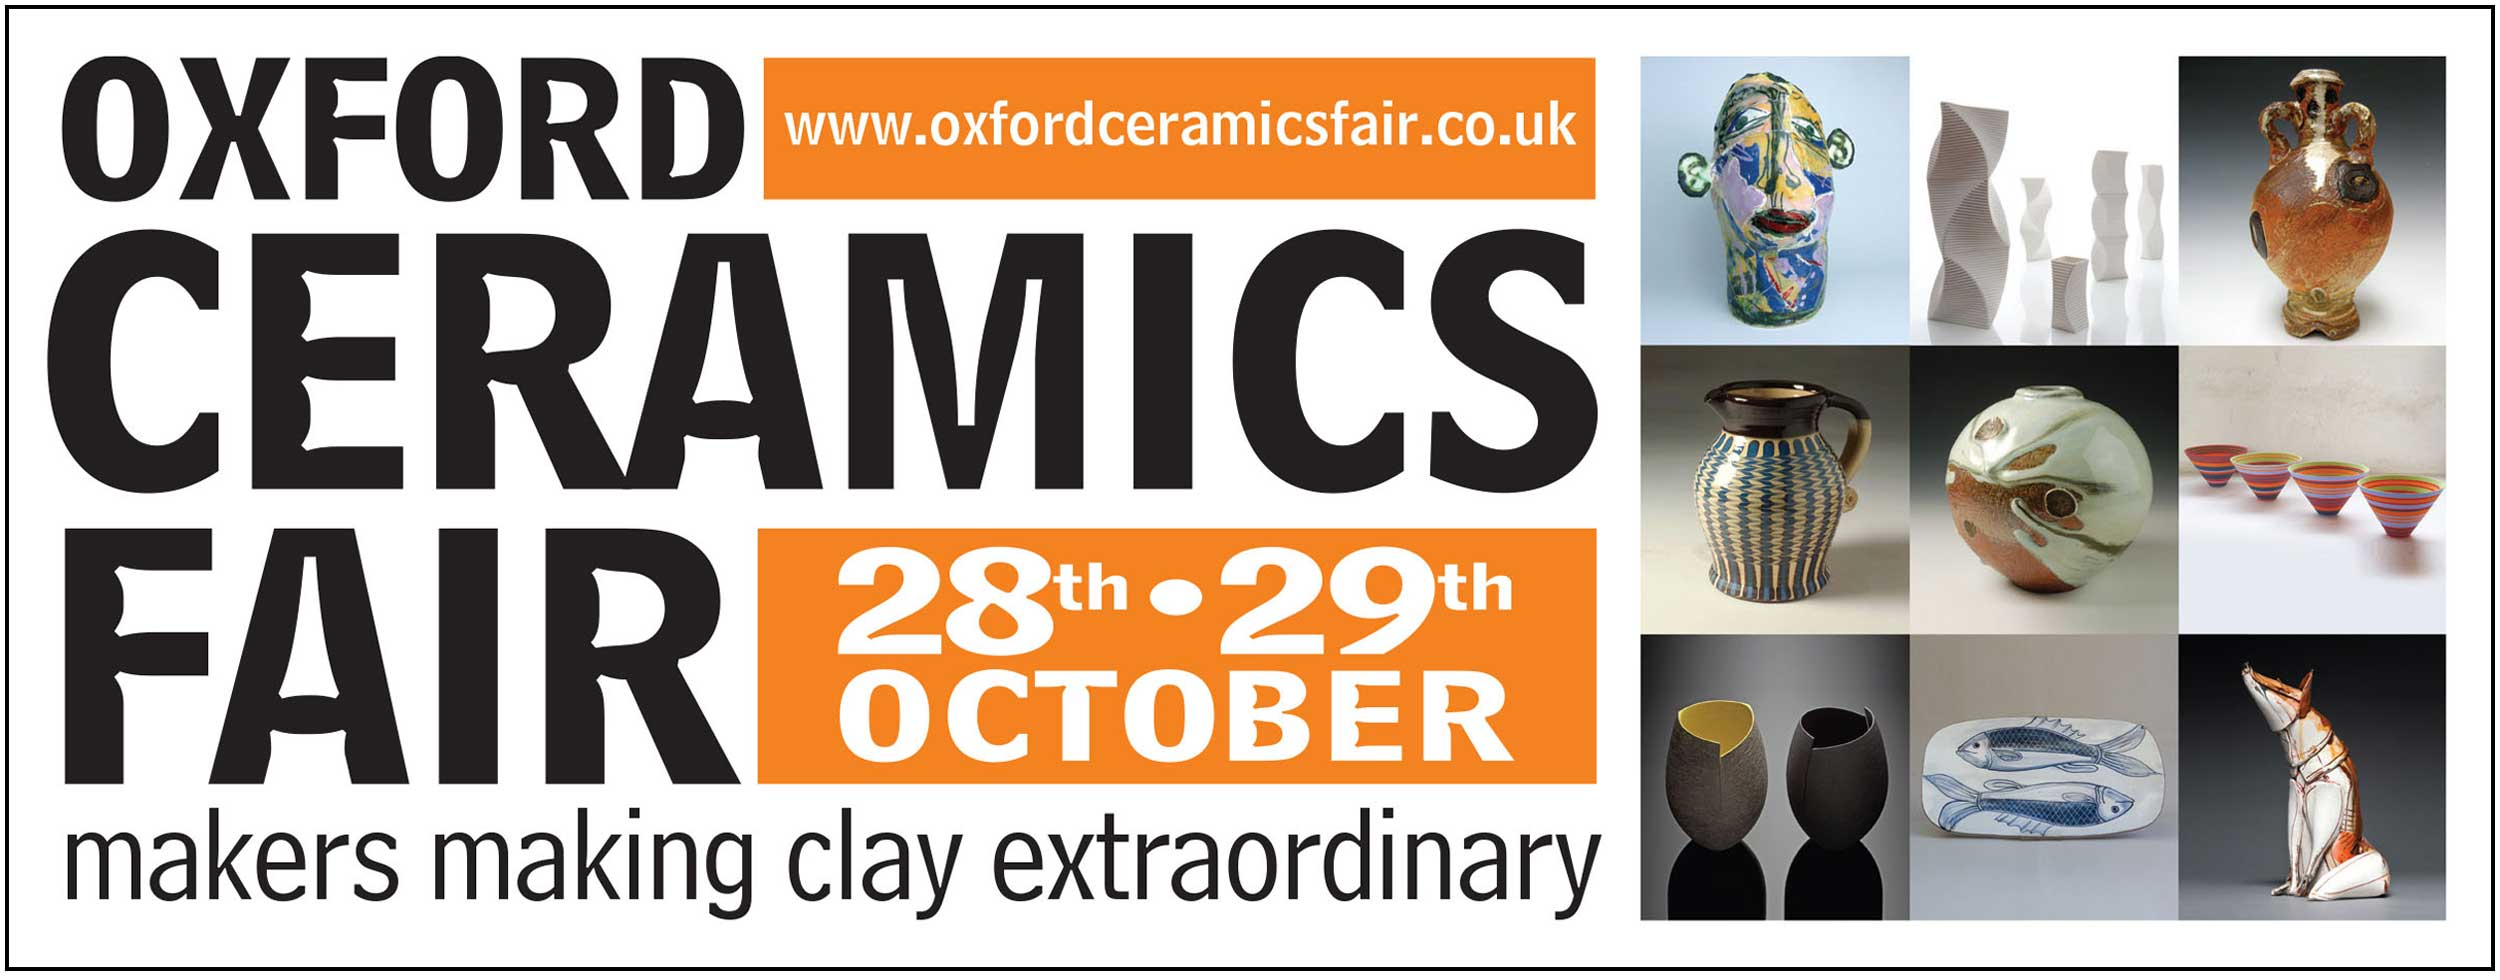 I am so chuffed to have been selected as one of six Associate Members of The Craft Potters Association (CPA) invited to exhibit along side 65 leading Potters & Ceramicists in Great Britain at their exclusive Oxford Fair this October.    www.oxfordceramicsfair.co.uk